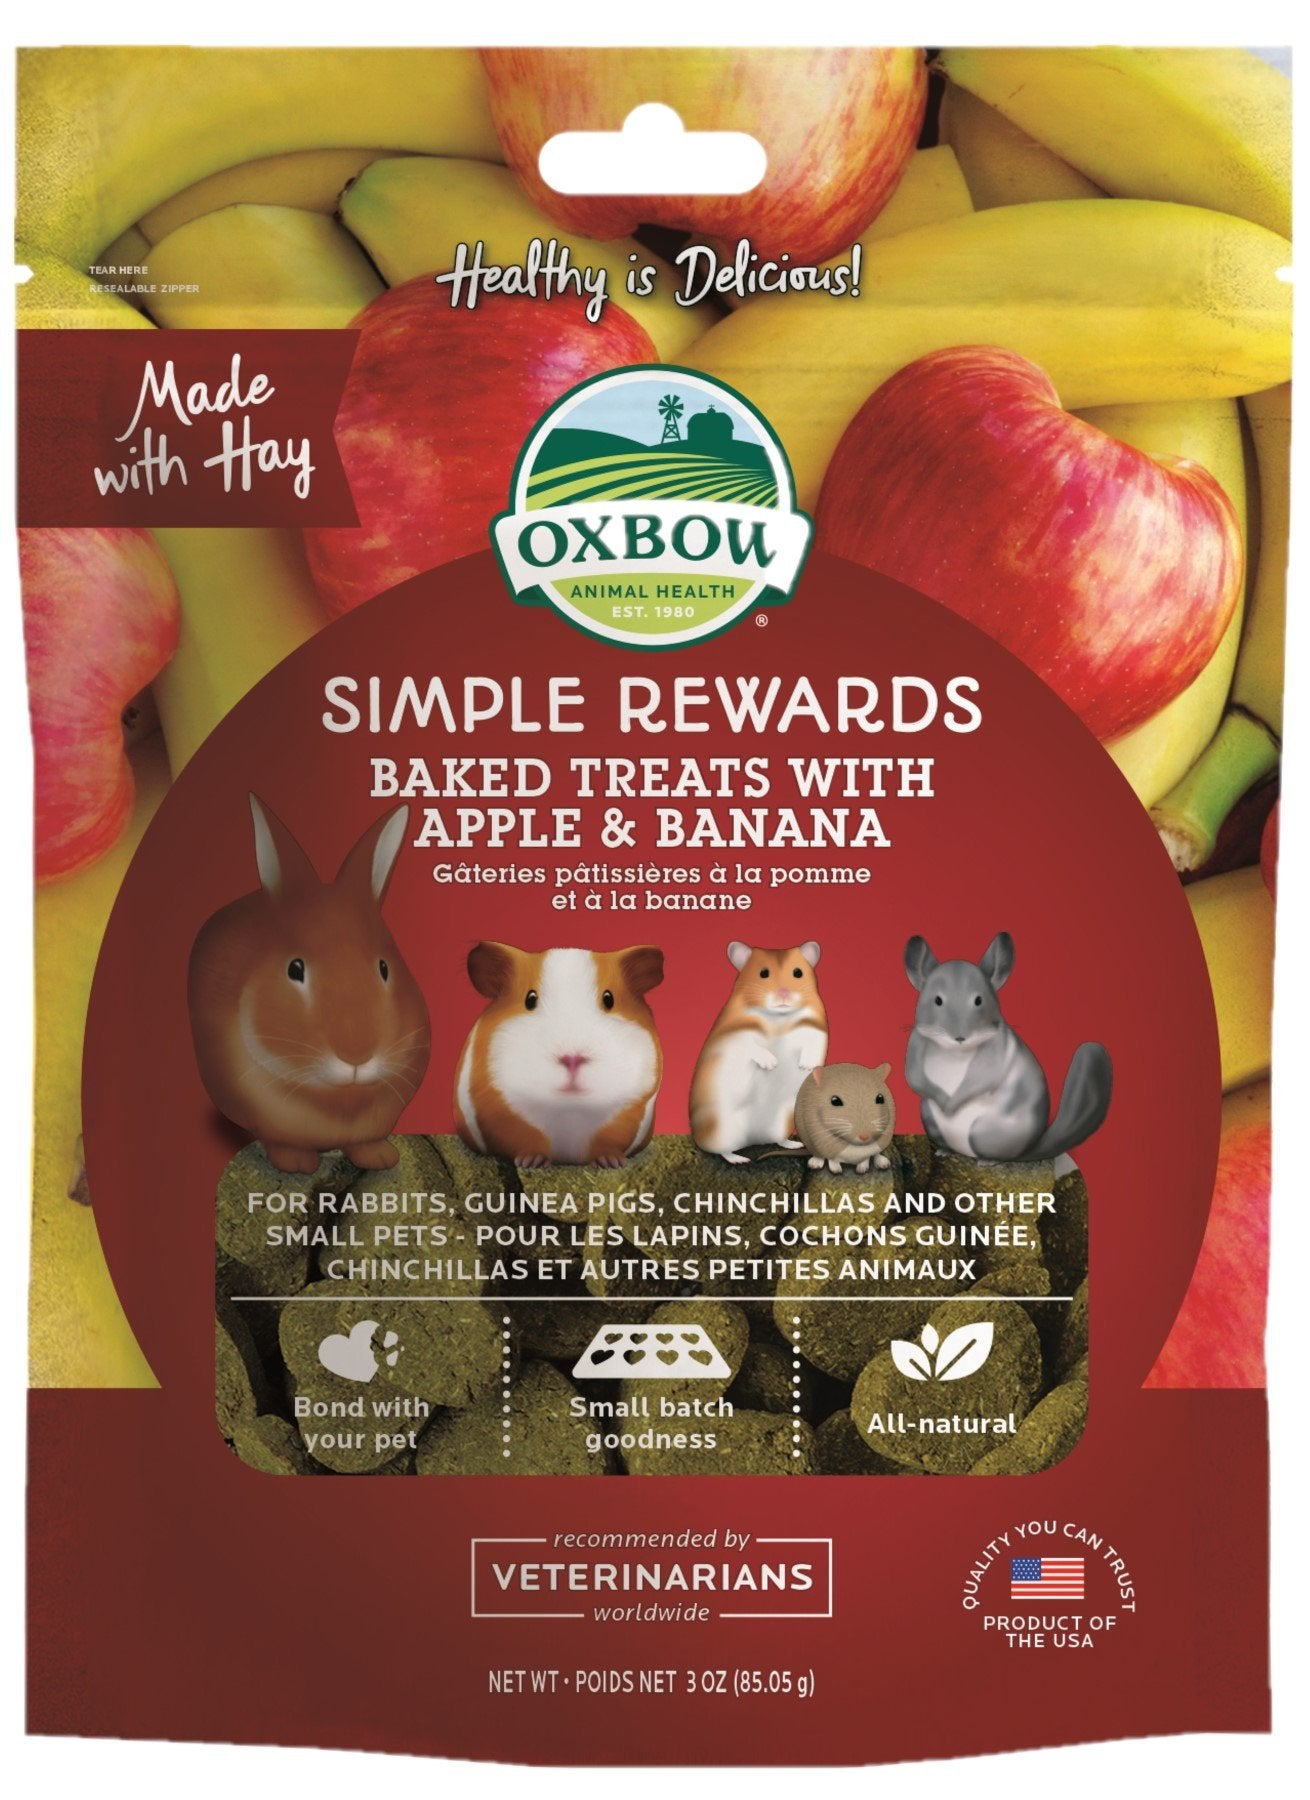 Oxbow Simple Rewards Apply & Banana 85g - RSPCA VIC